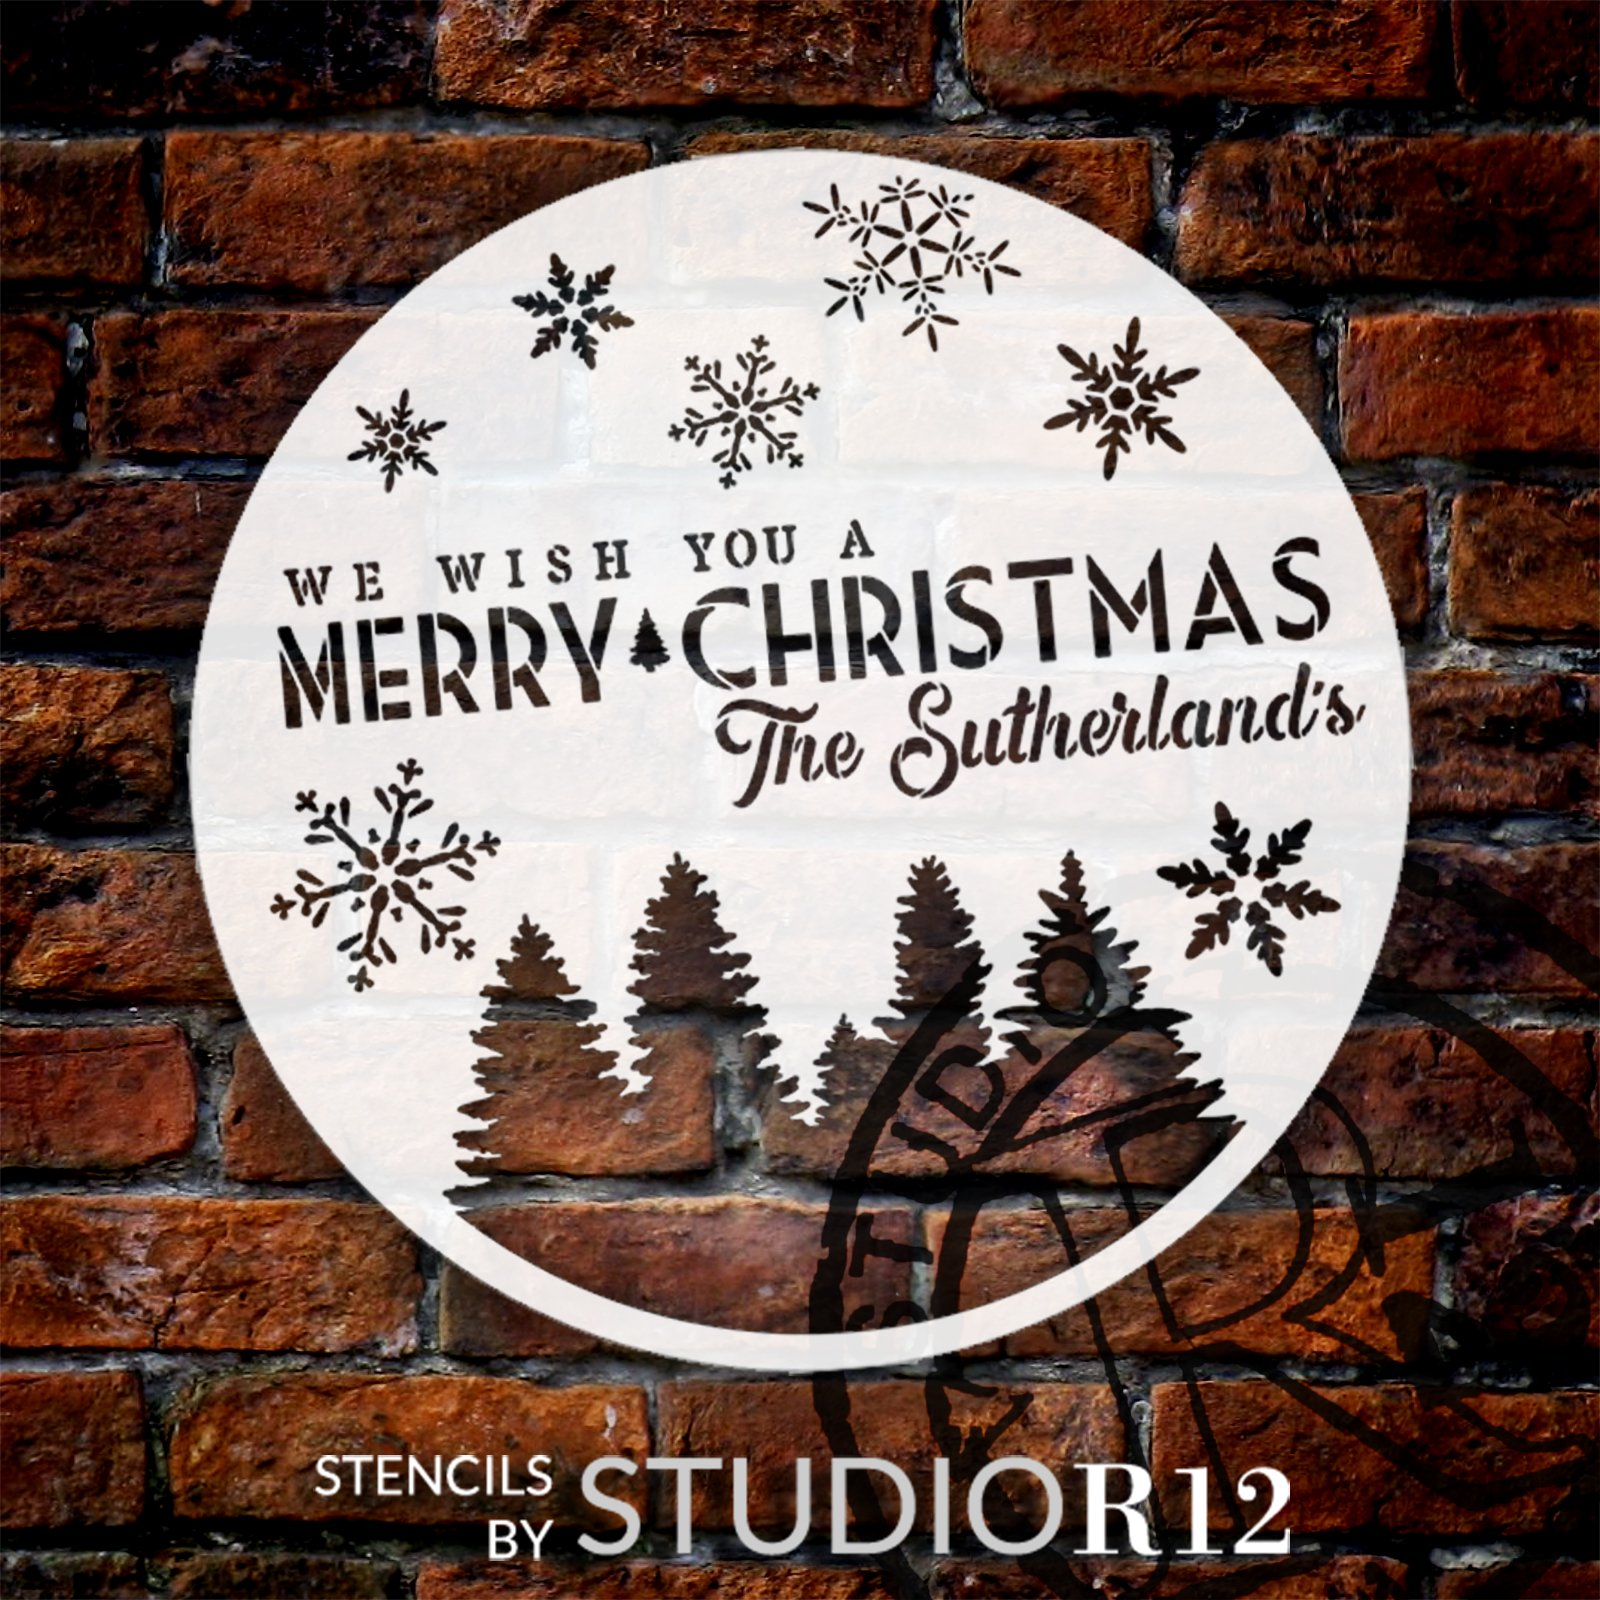 Personalized We Wish You A Merry Christmas Stencil by StudioR12   DIY Custom Holiday Home Decor   Craft & Paint Wood Signs   Size (18 x 18 inch)